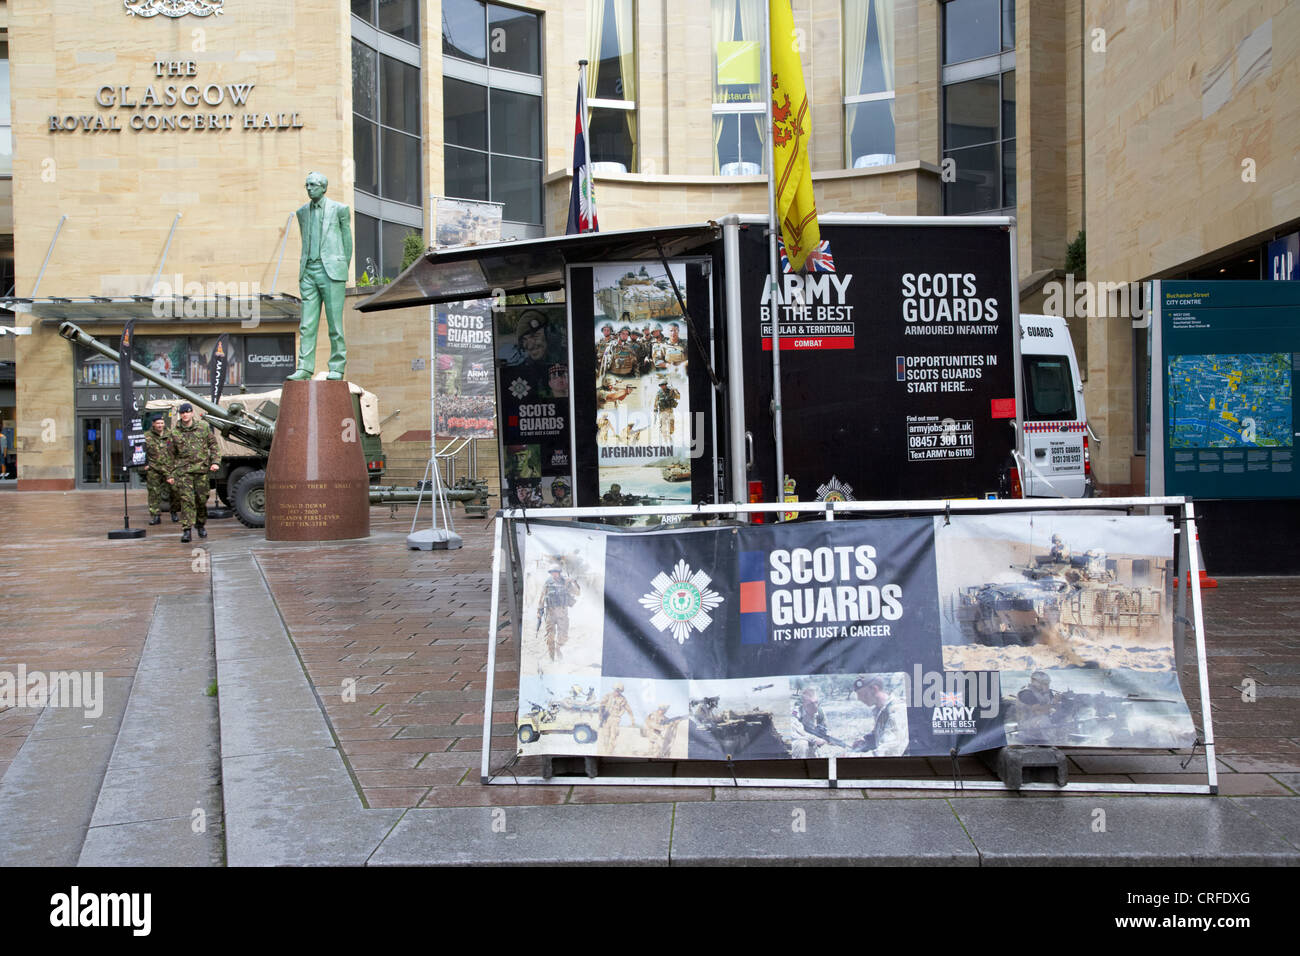 scots guards british army recruitment stand glasgow city centre scotland uk - Stock Image